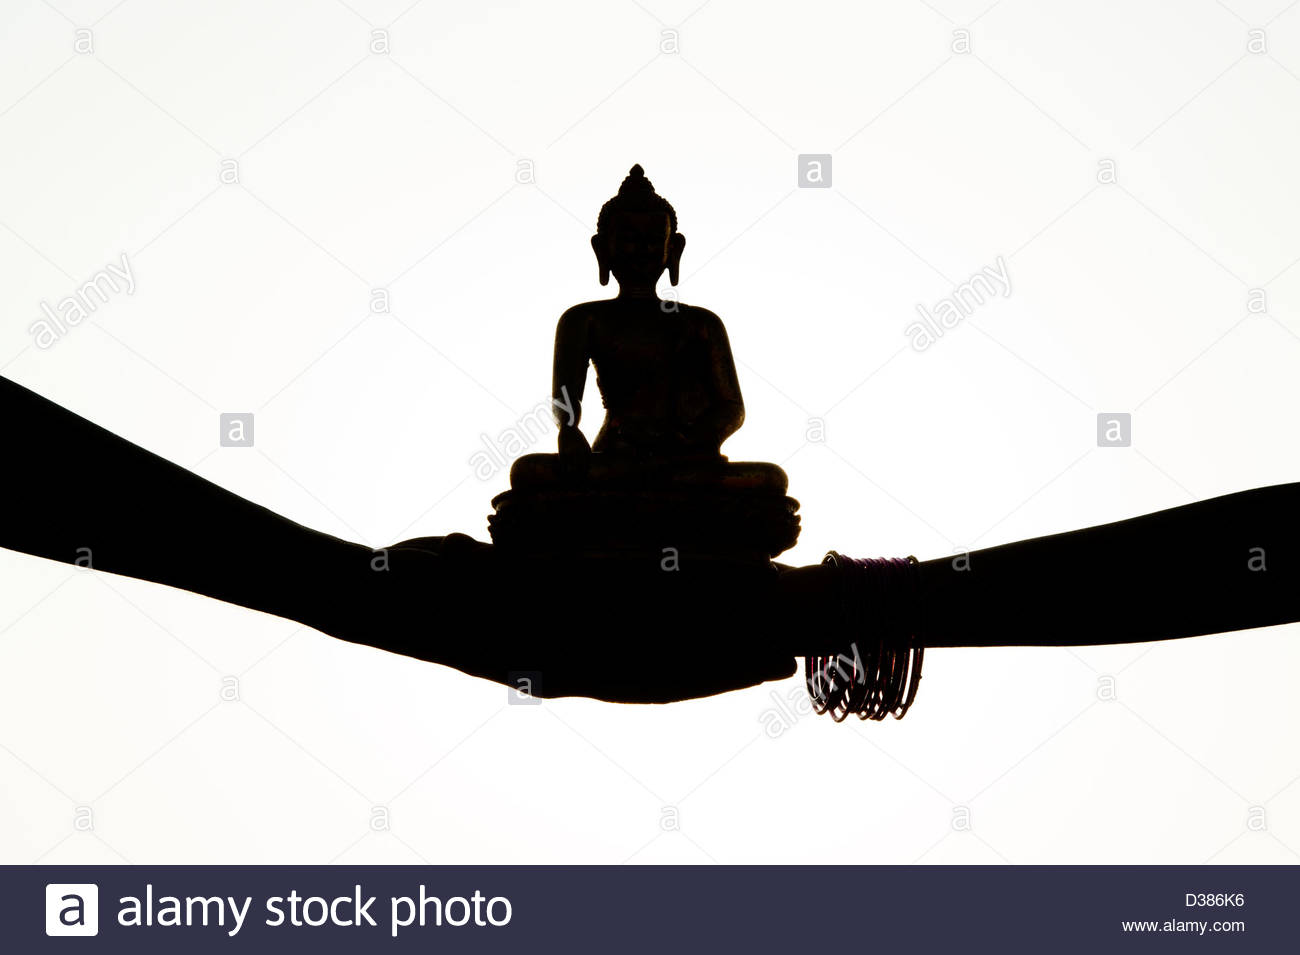 1300x955 Indian Hands Holding A Buddha Statue. Silhouette Stock Photo